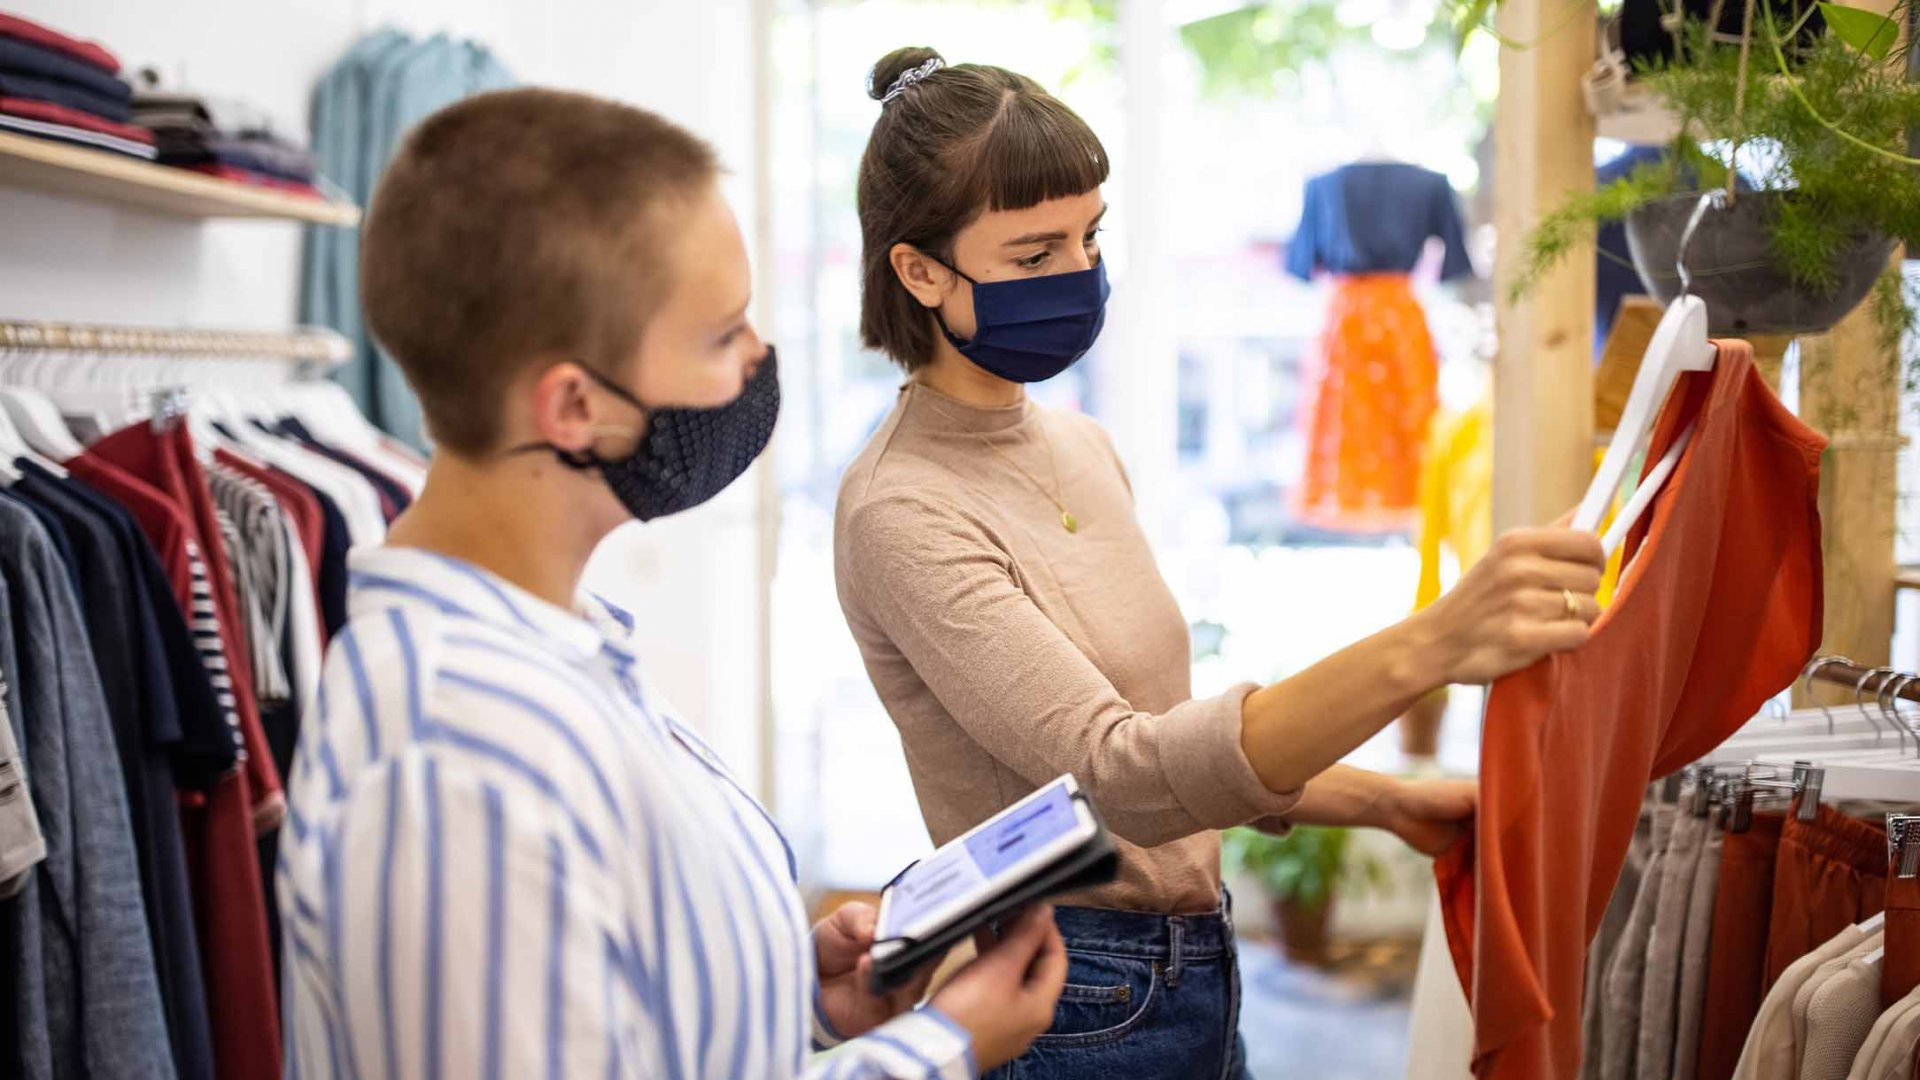 4 Key Values to Delight Customers During the Pandemic